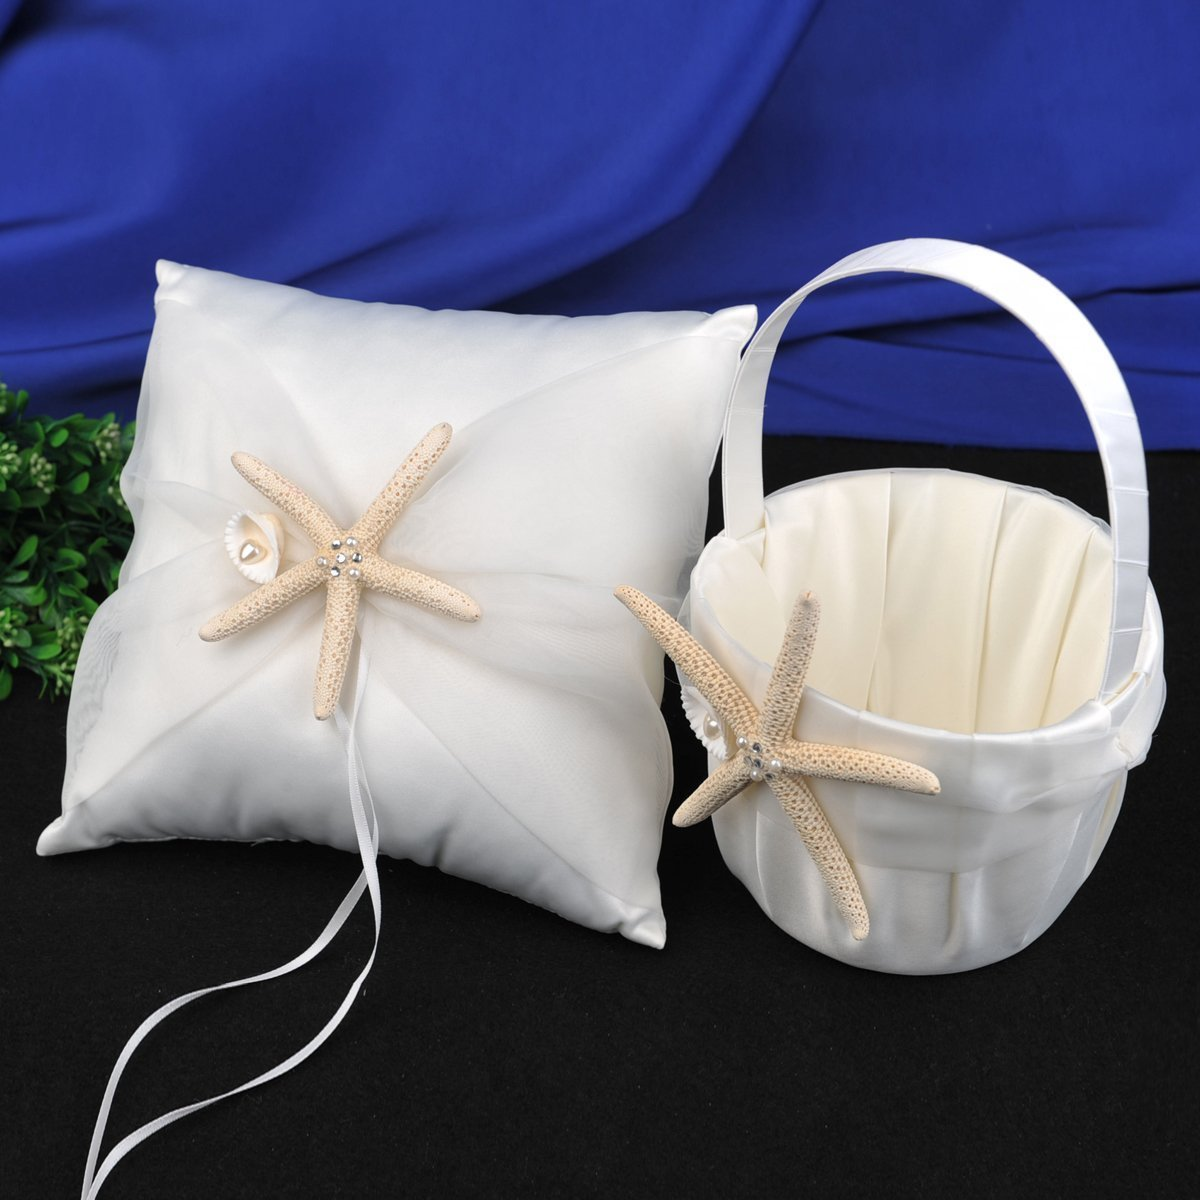 Cheap starfish girl find starfish girl deals on line at alibaba get quotations topwedding satin and organza ivory wedding ring pillow and flower girl basket set with starfish izmirmasajfo Images